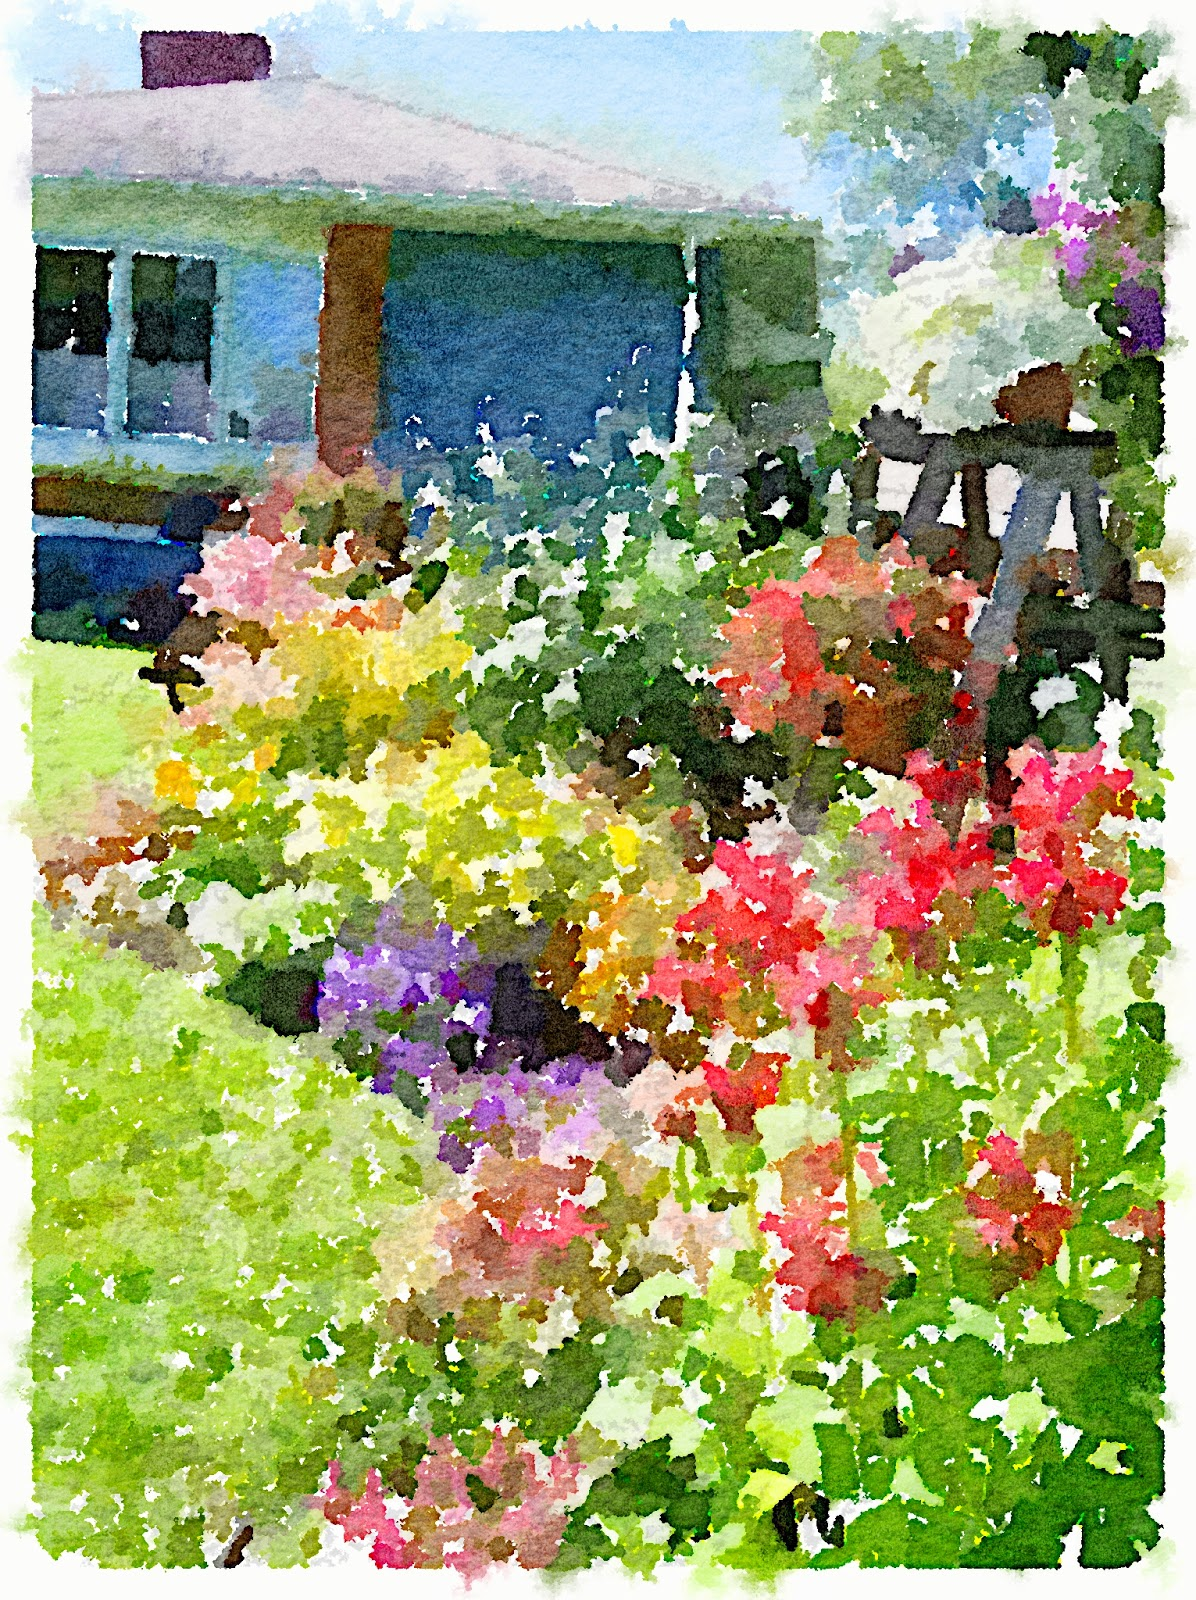 Waterlogue Front Yard Flower Border www.organizedclutterqueen.blogspot.com